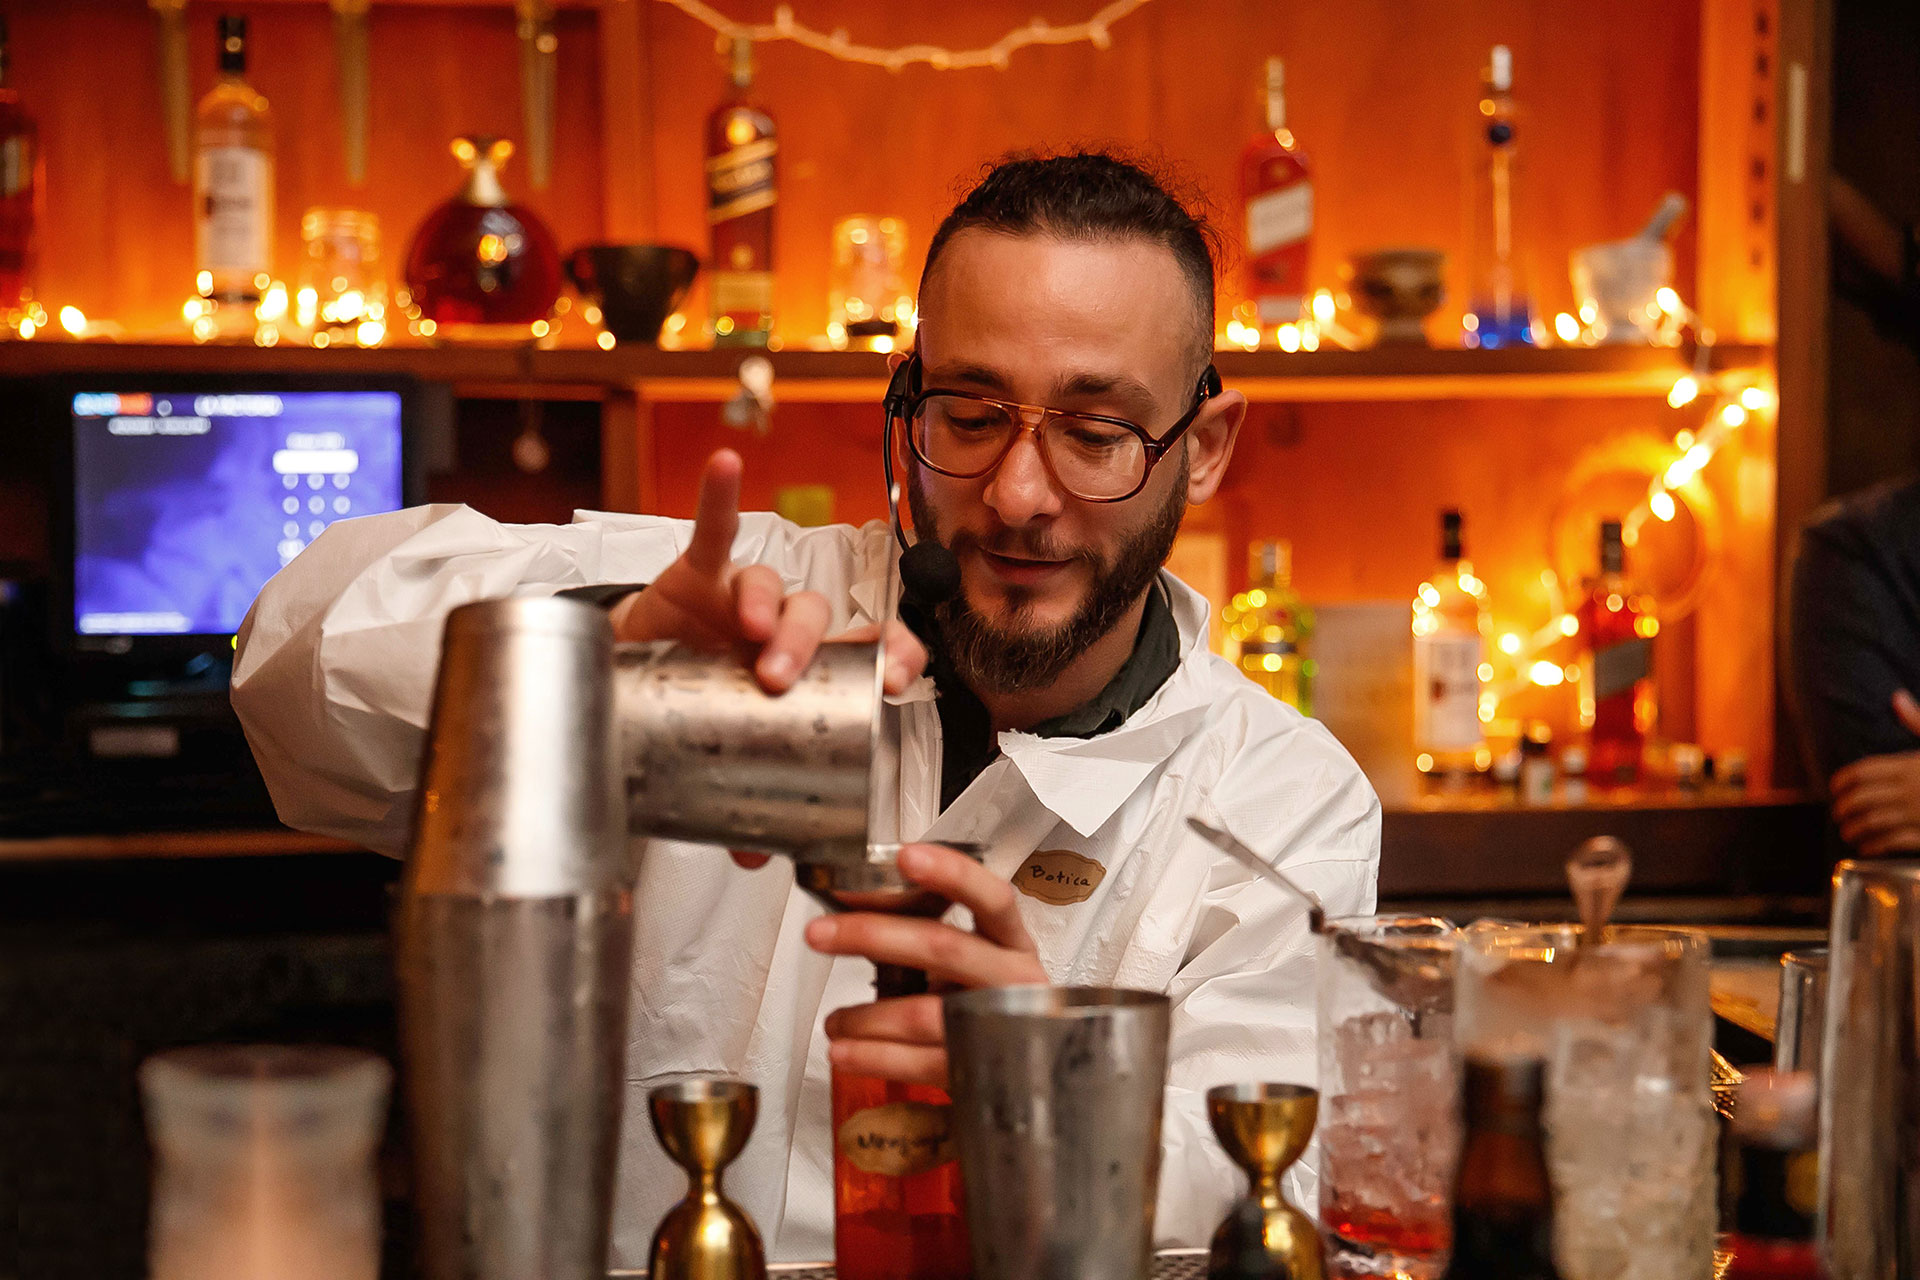 Luis Pagan from La Coctelera won the 2018 World Class Bartender Puerto Rico Competition.